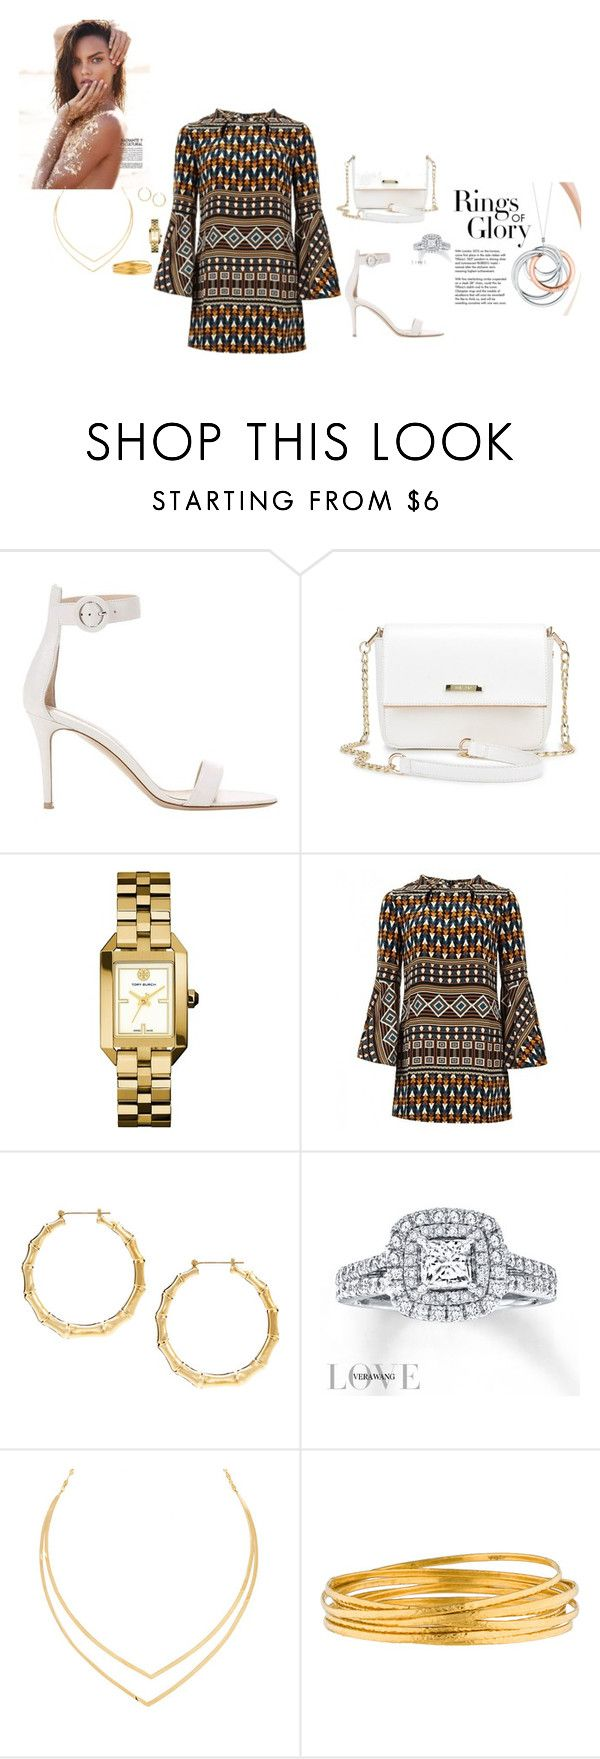 """""""outhimg with fiance"""" by chisomnatalie on Polyvore featuring Gianvito Rossi, Tory Burch, Gucci, Vera Wang, Tiffany & Co., Lana and Gurhan"""